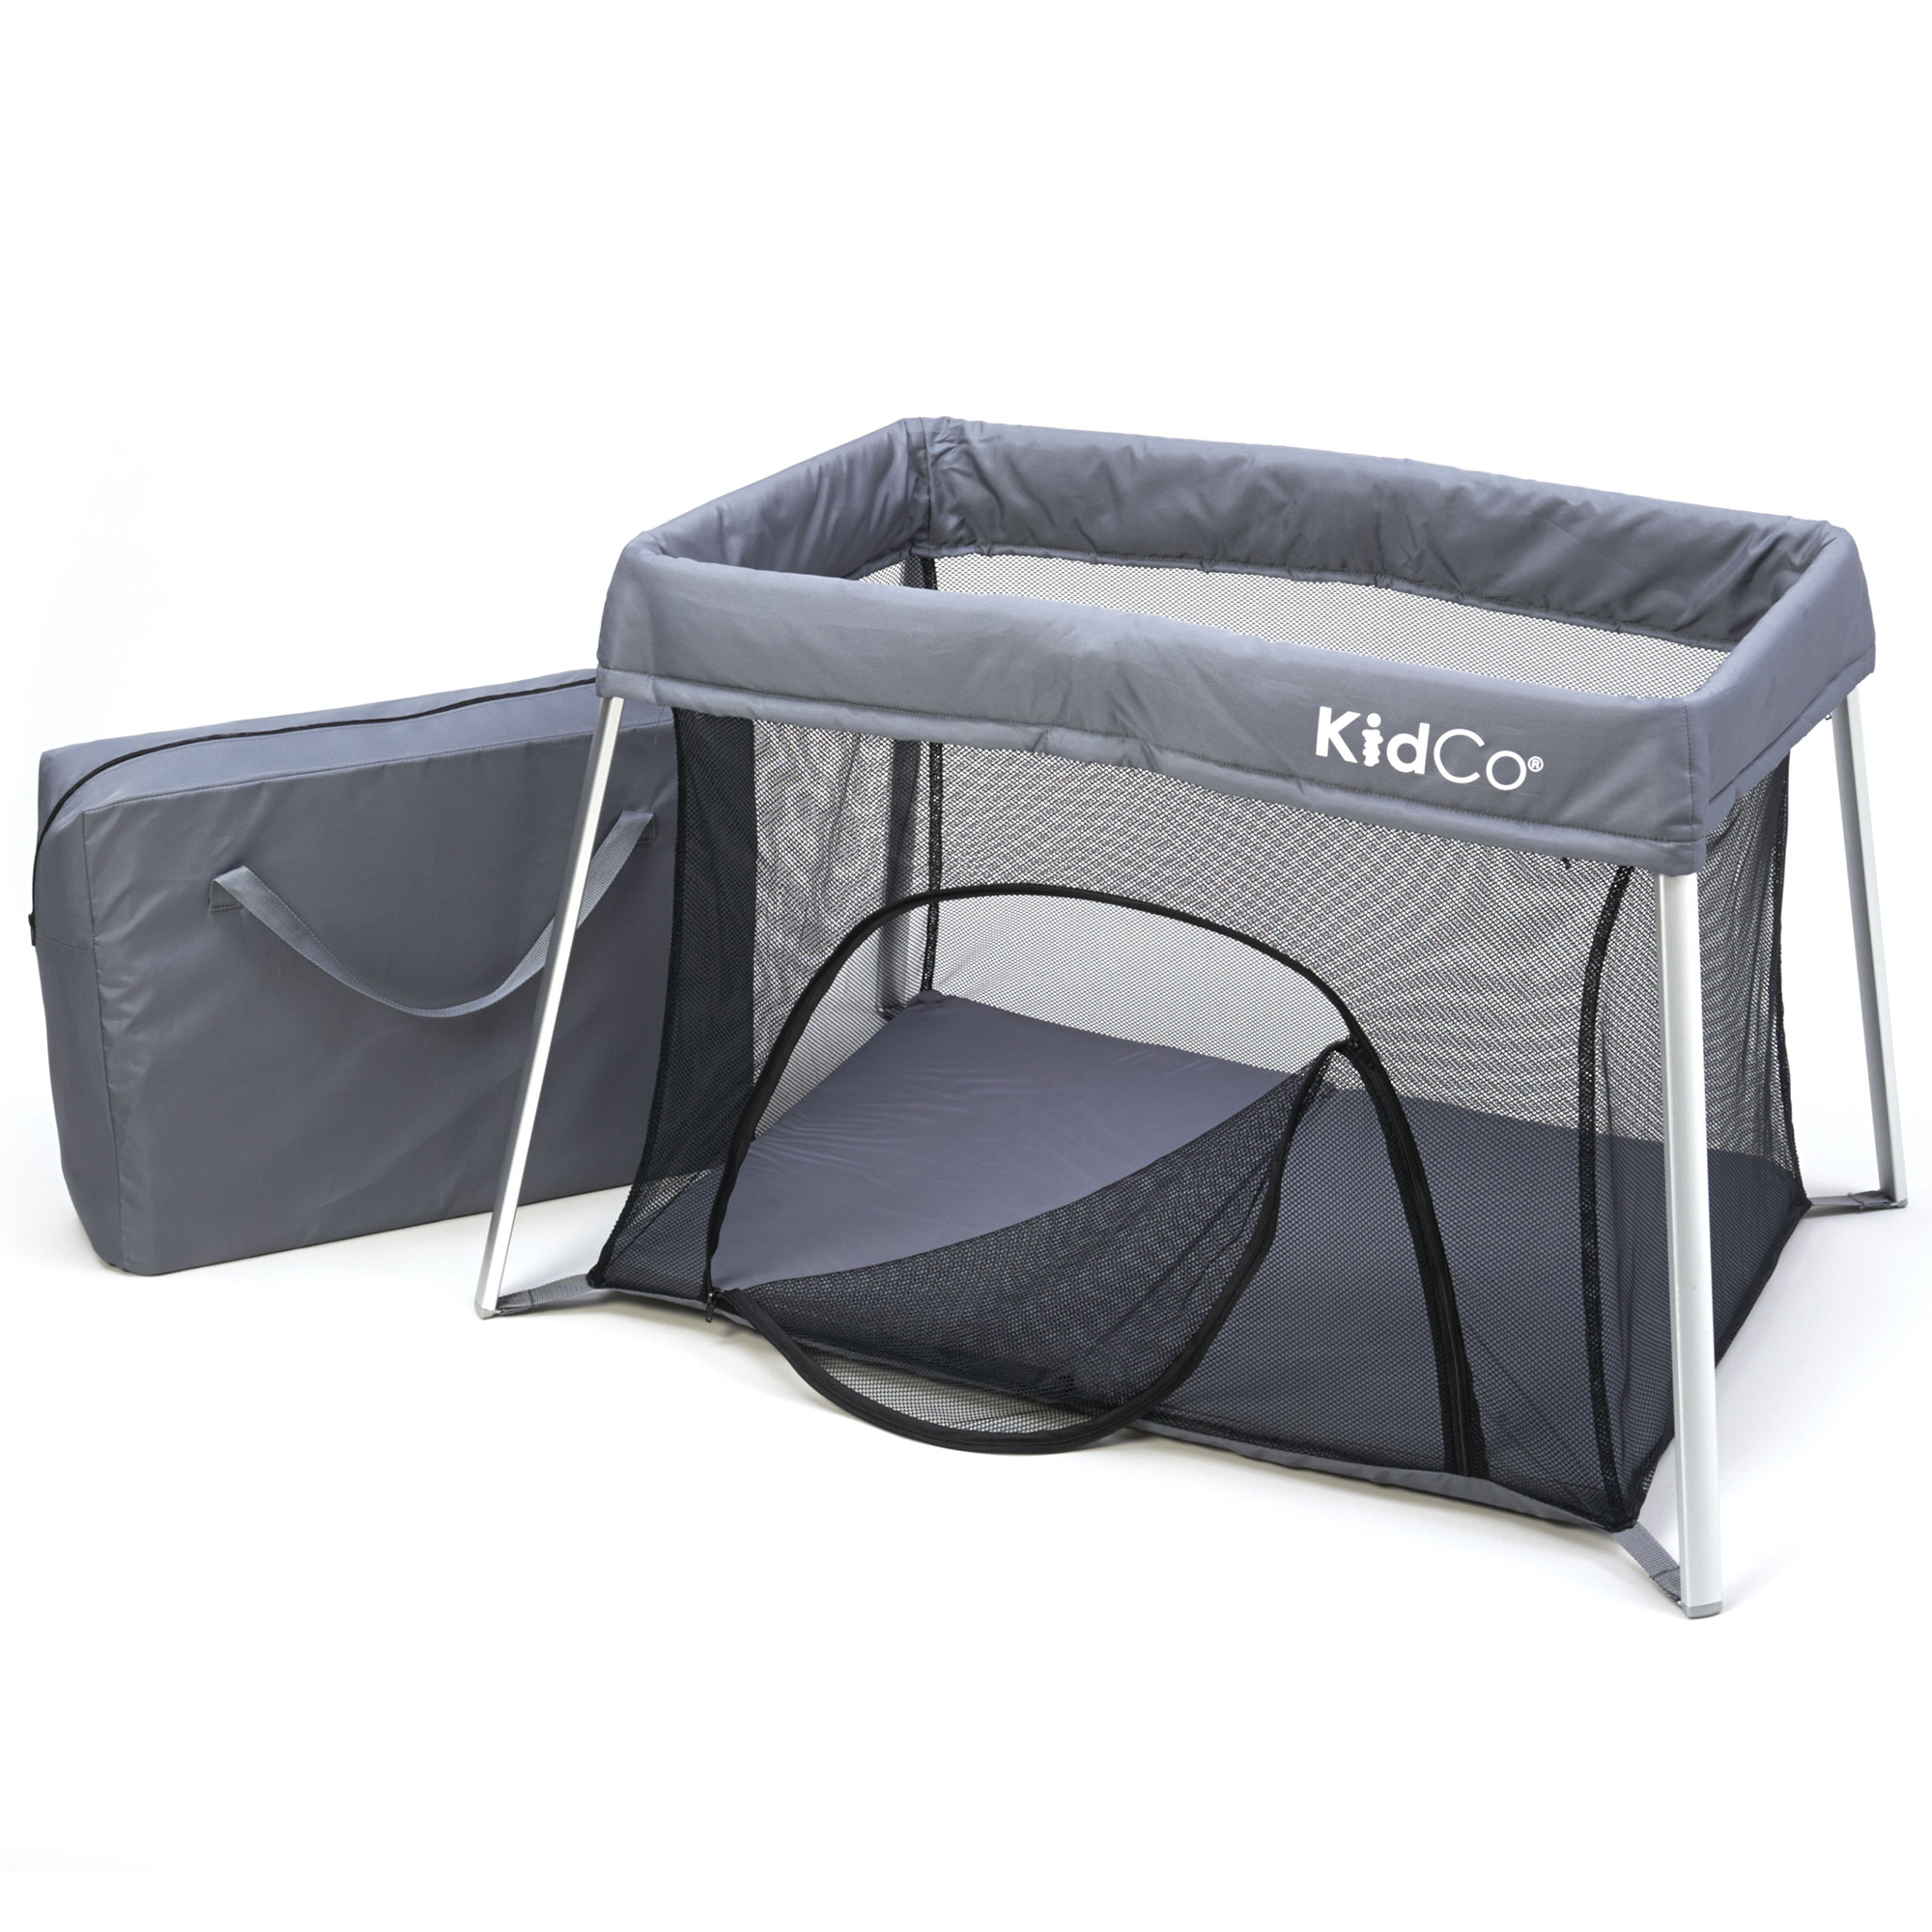 KIDCO TR3011 Gray KIDCO TRAVELPOD PLUS TRAVEL PLAY YARD GRAY 42.5 X 29.5 X 27